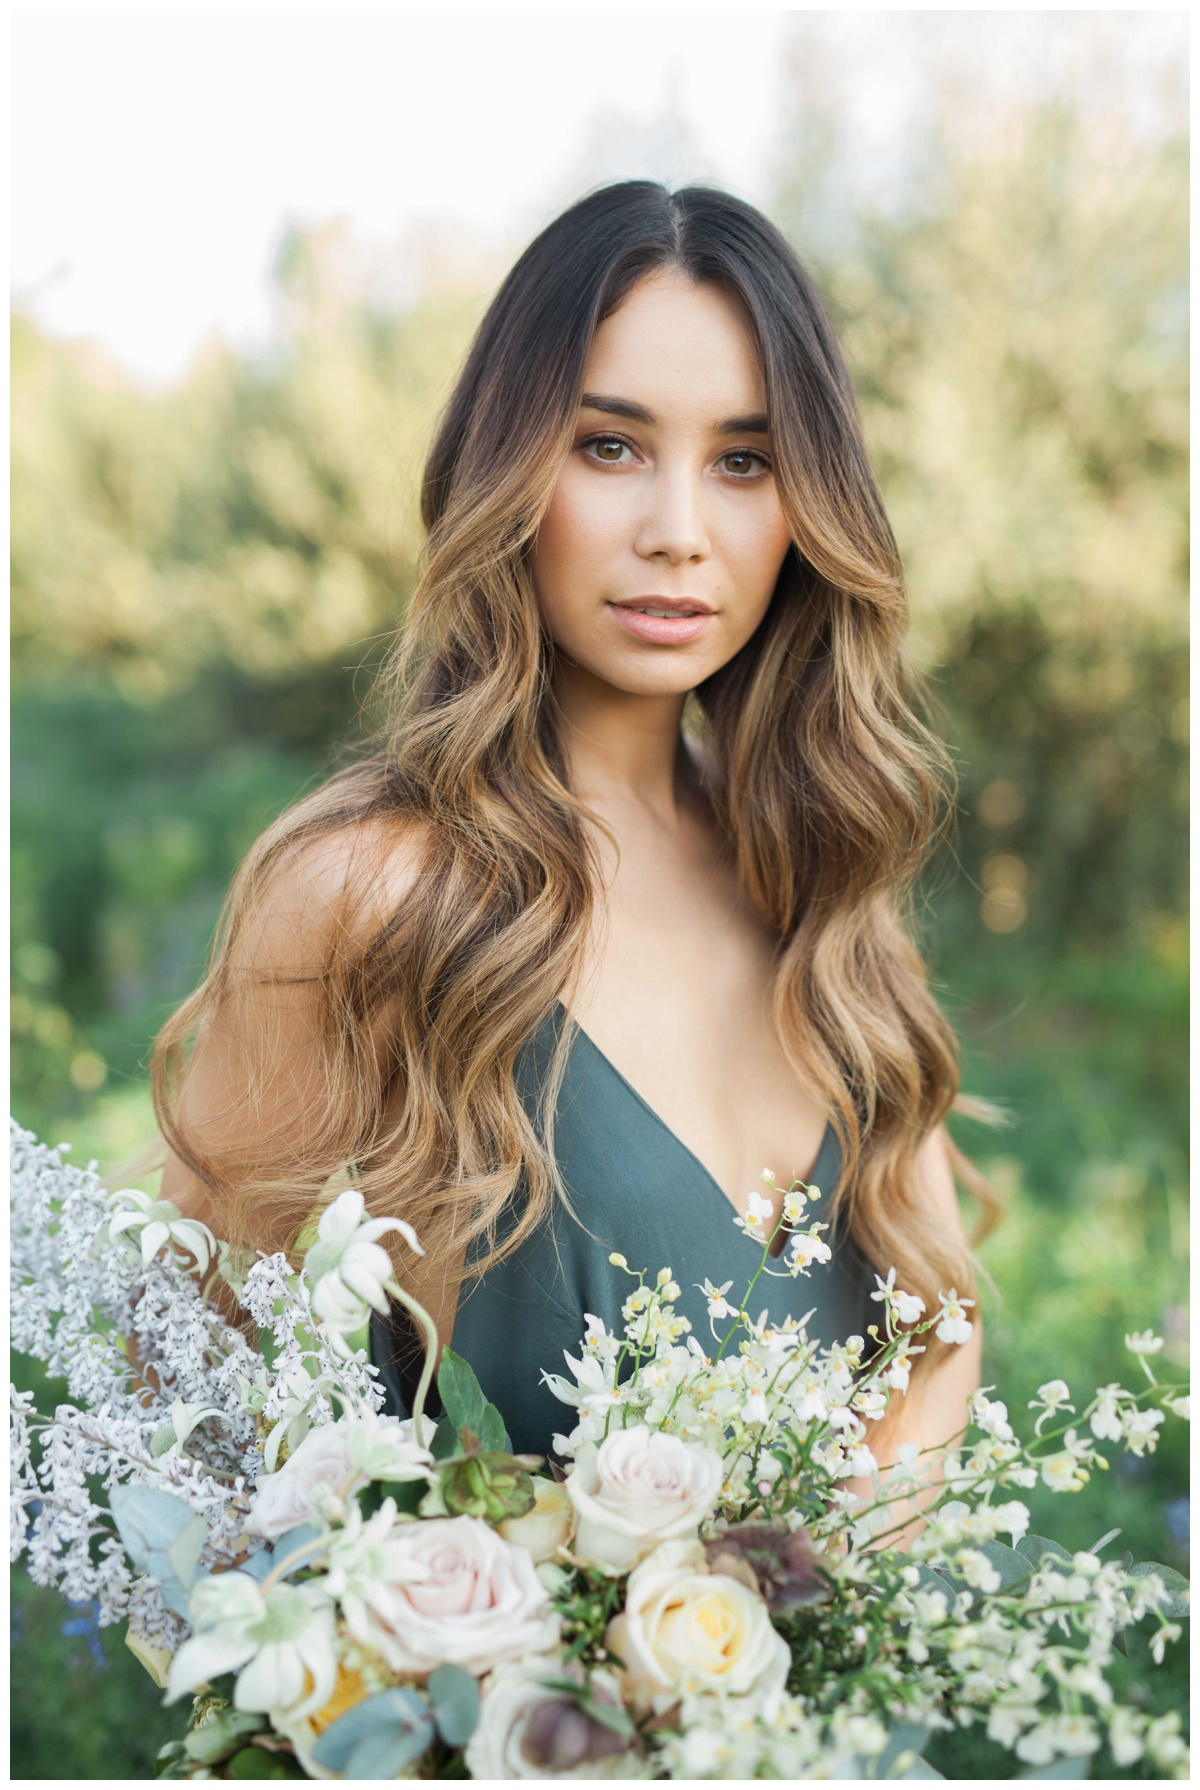 CA Floral Couture & Chrystal Hair - Tessa Kit Photography - Perth Wedding & Engagement Photographer - October 01, 2017 - IMG_8072.jpg